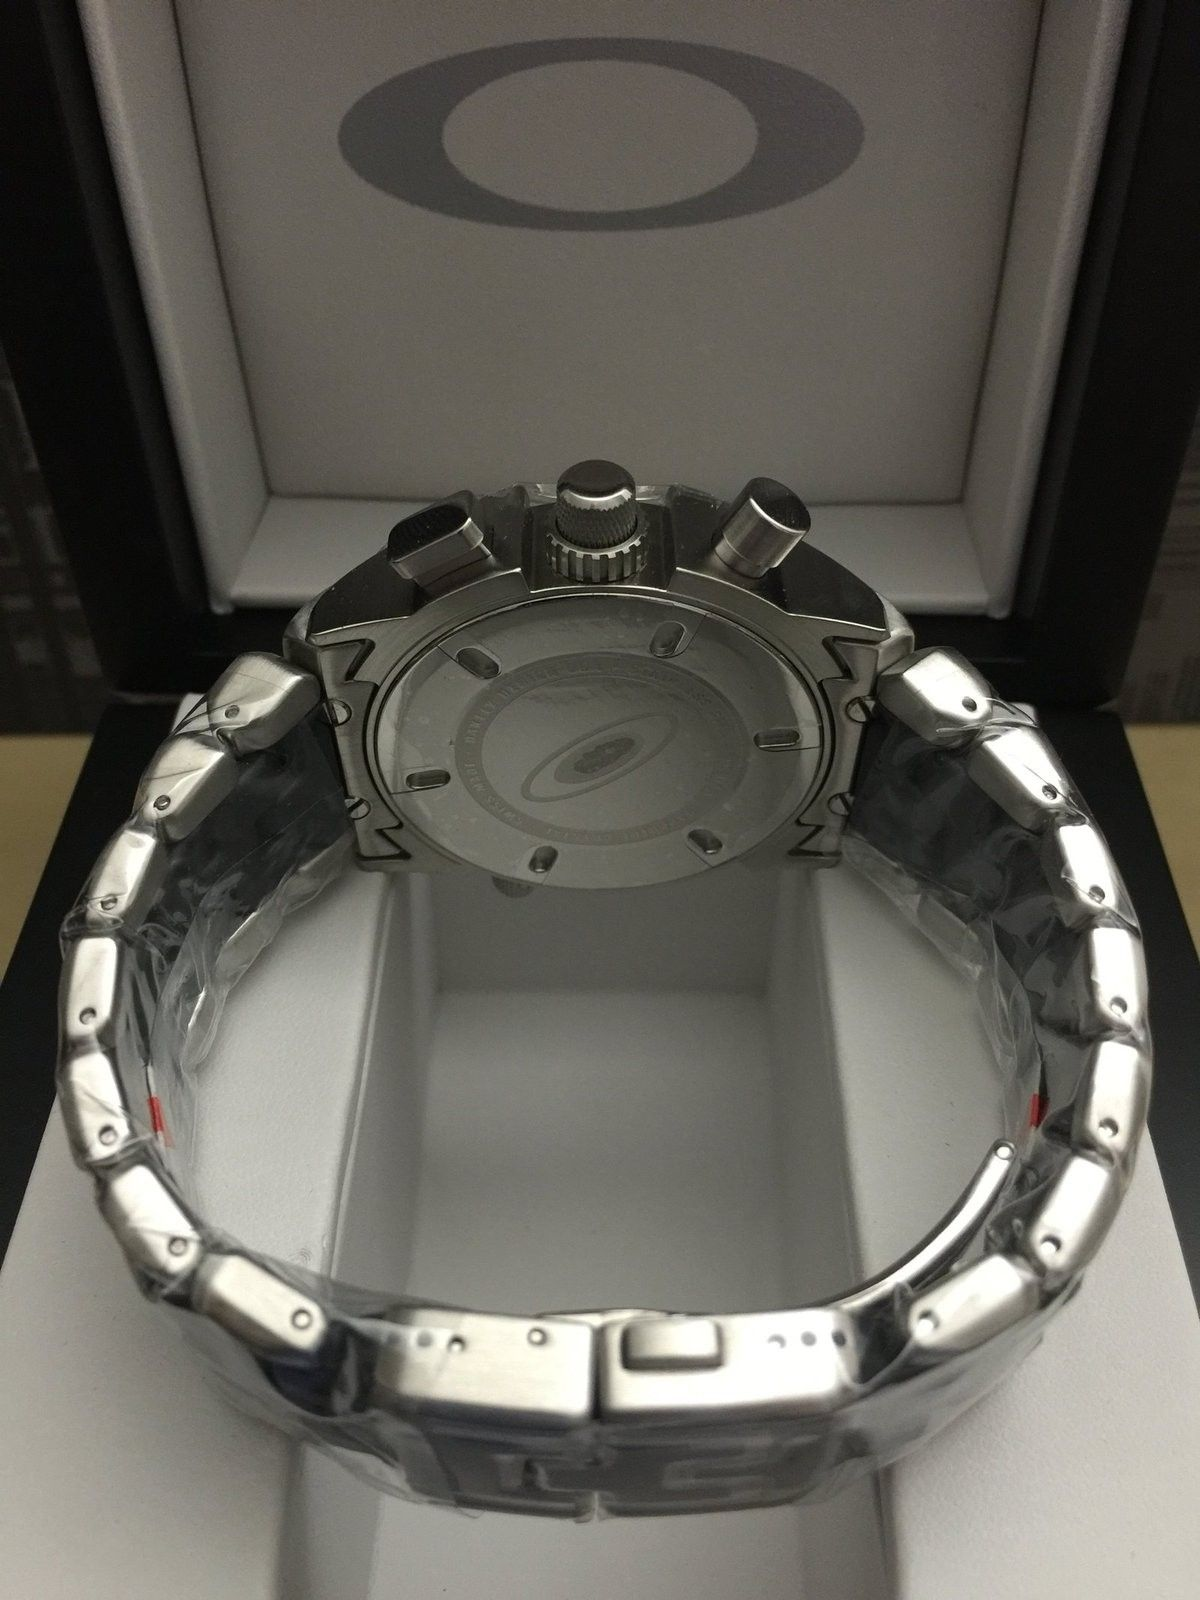 Watches for sale: Brand new 12 Gauge White Dial with Stainless Steel Bracelet (last one) - IMG_4658.JPG